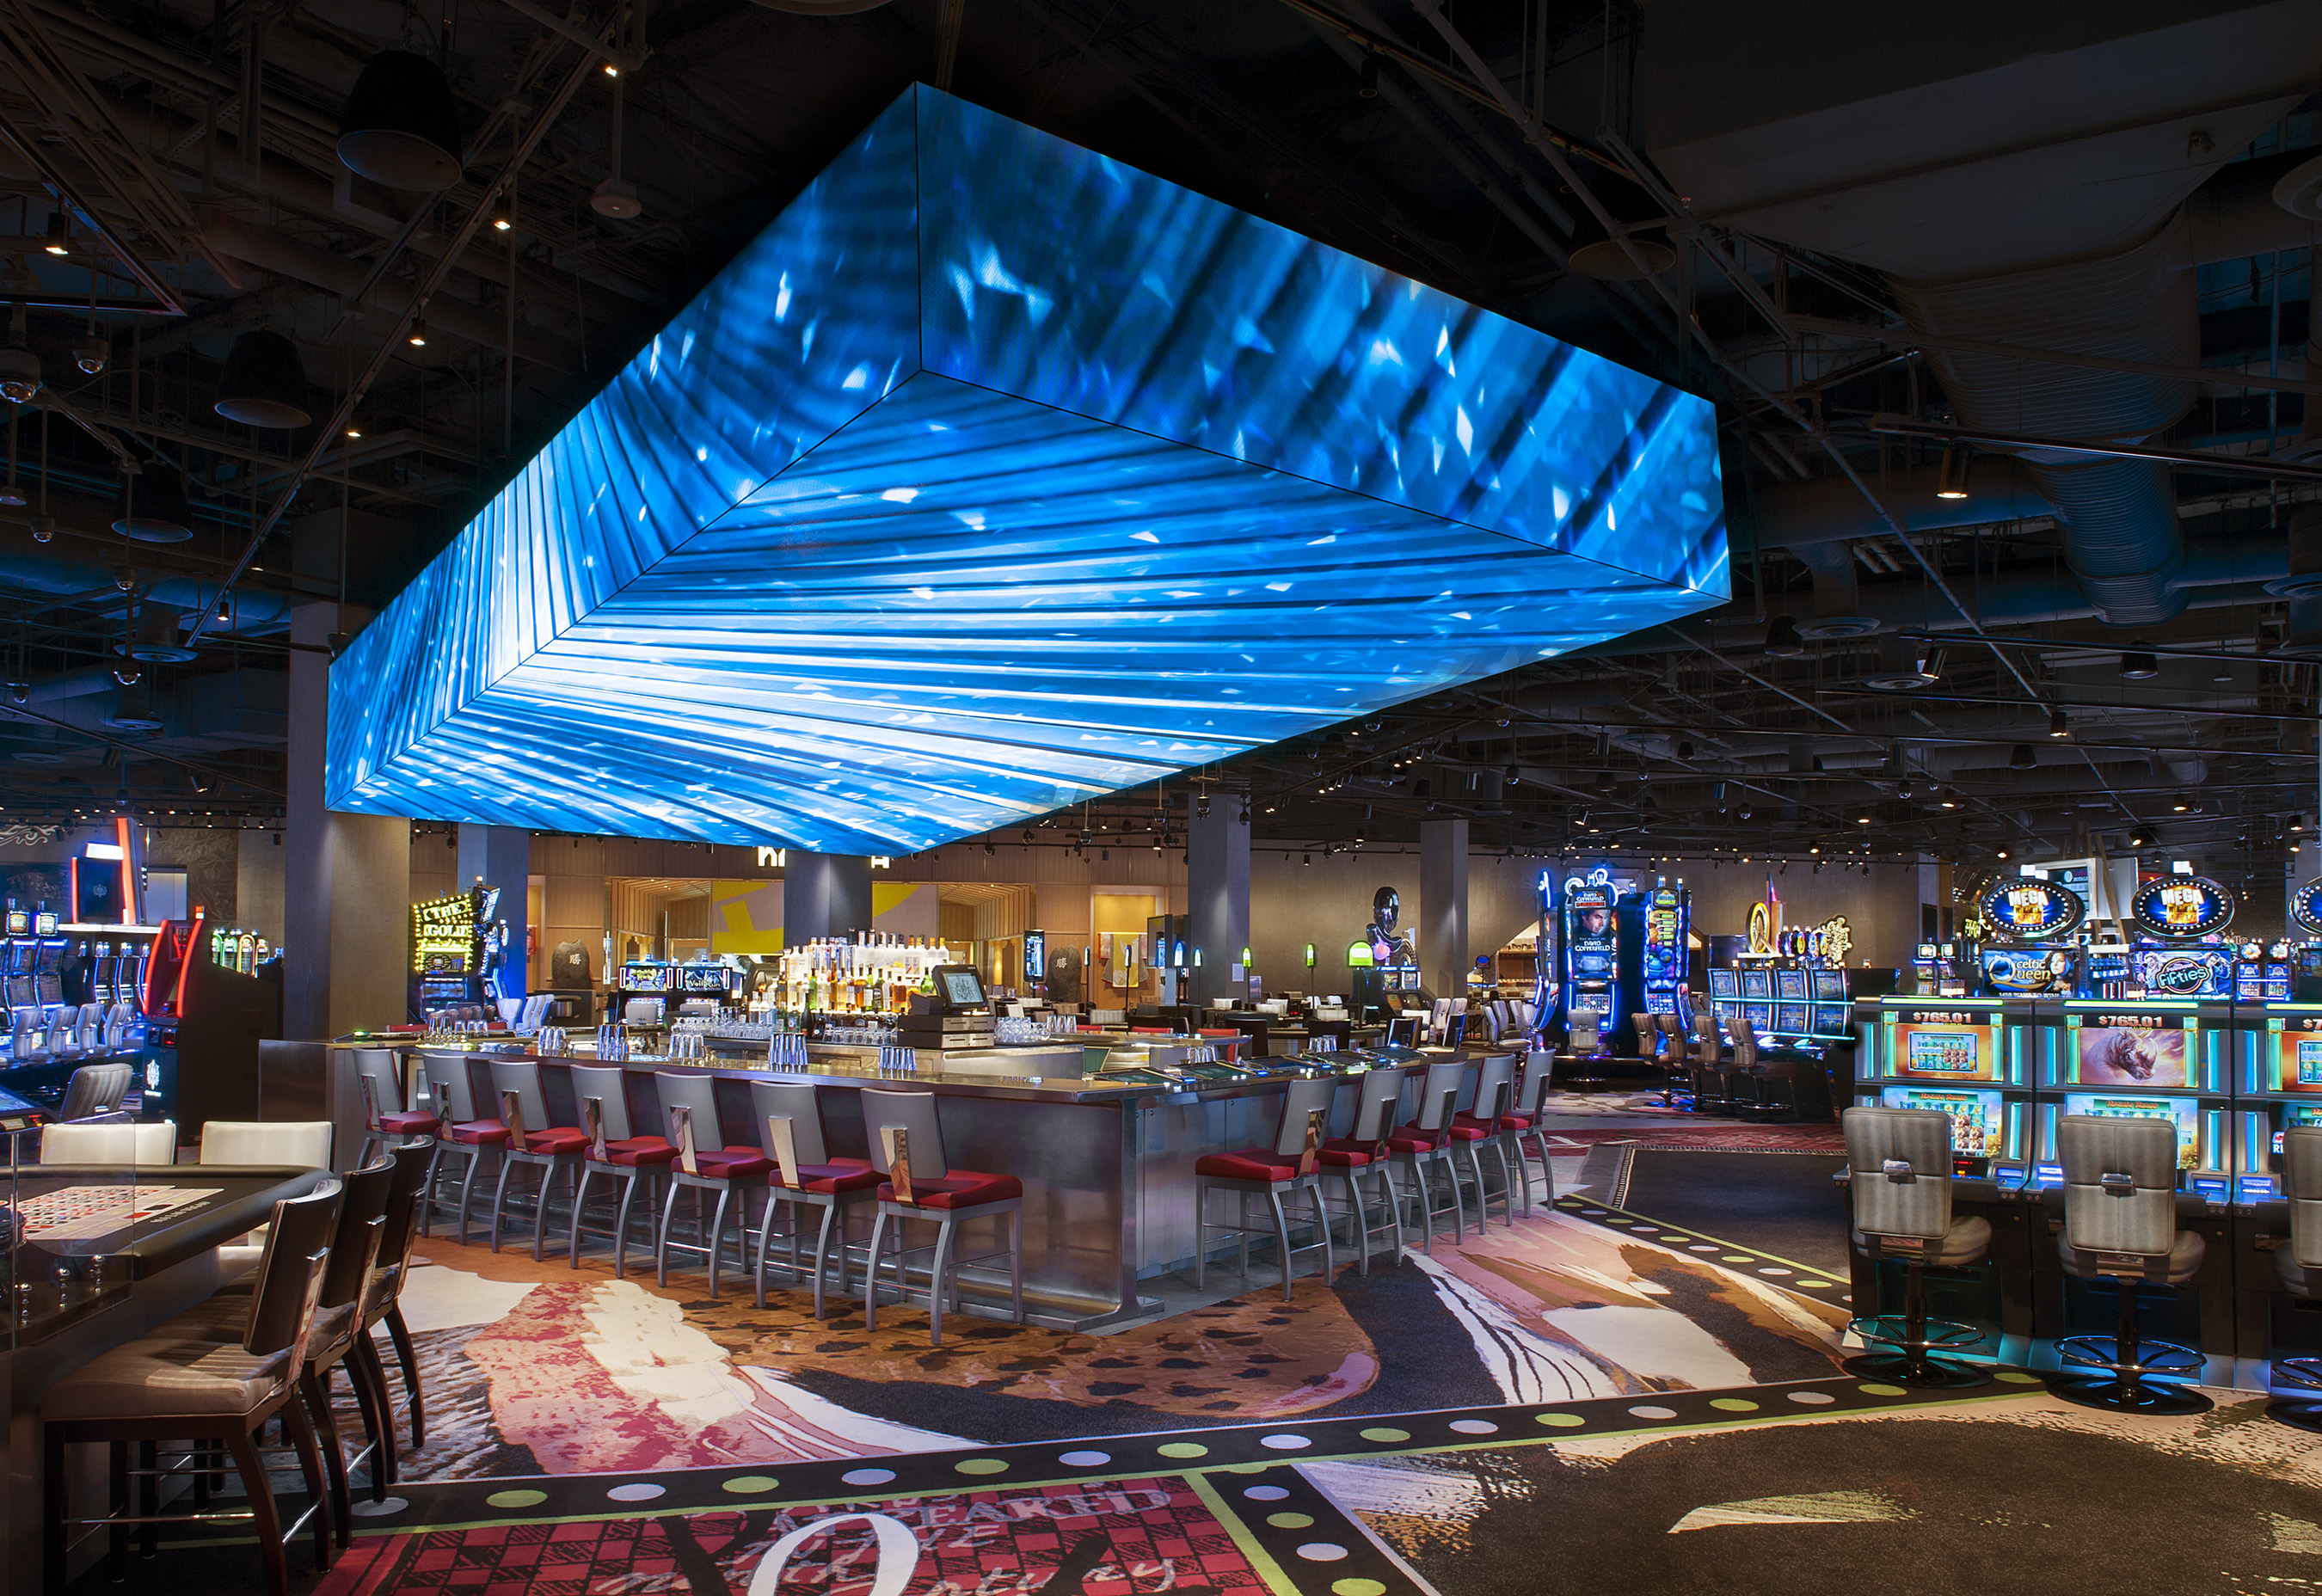 From signature dining to masterful mixology, and enlivening design, SLS Las Vegas offers the best of global hospitality leader sbe's renowned brands all under one roof.